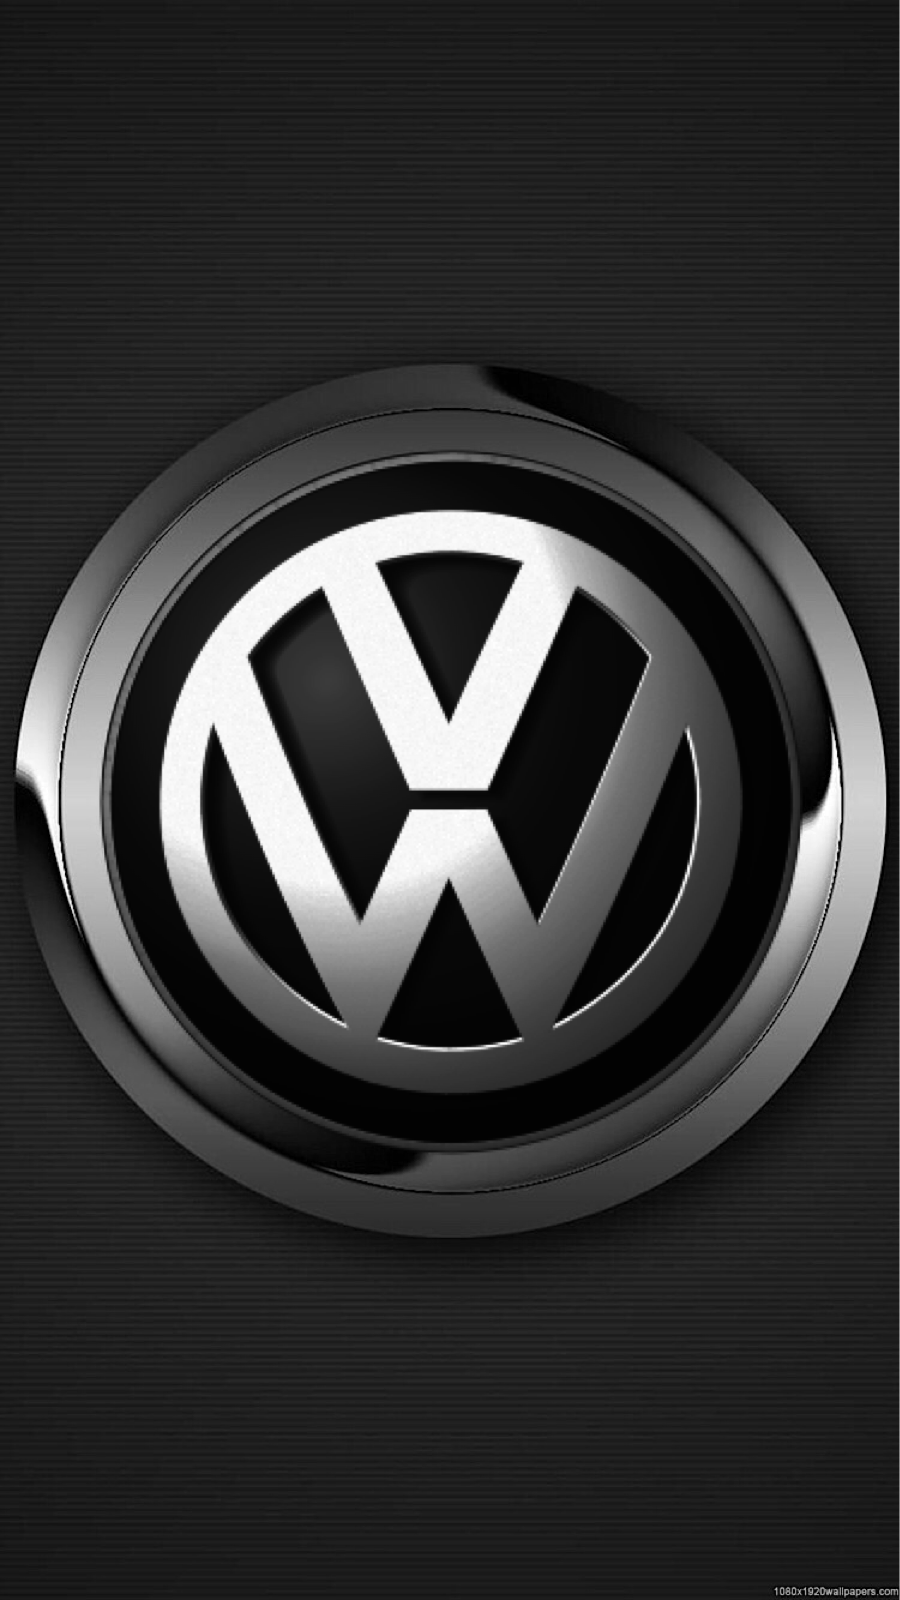 Pin By Kev Bennett On Volkswagen Iphone Wallpapers Vw Golf Wallpaper Volkswagen Volkswagen Logo